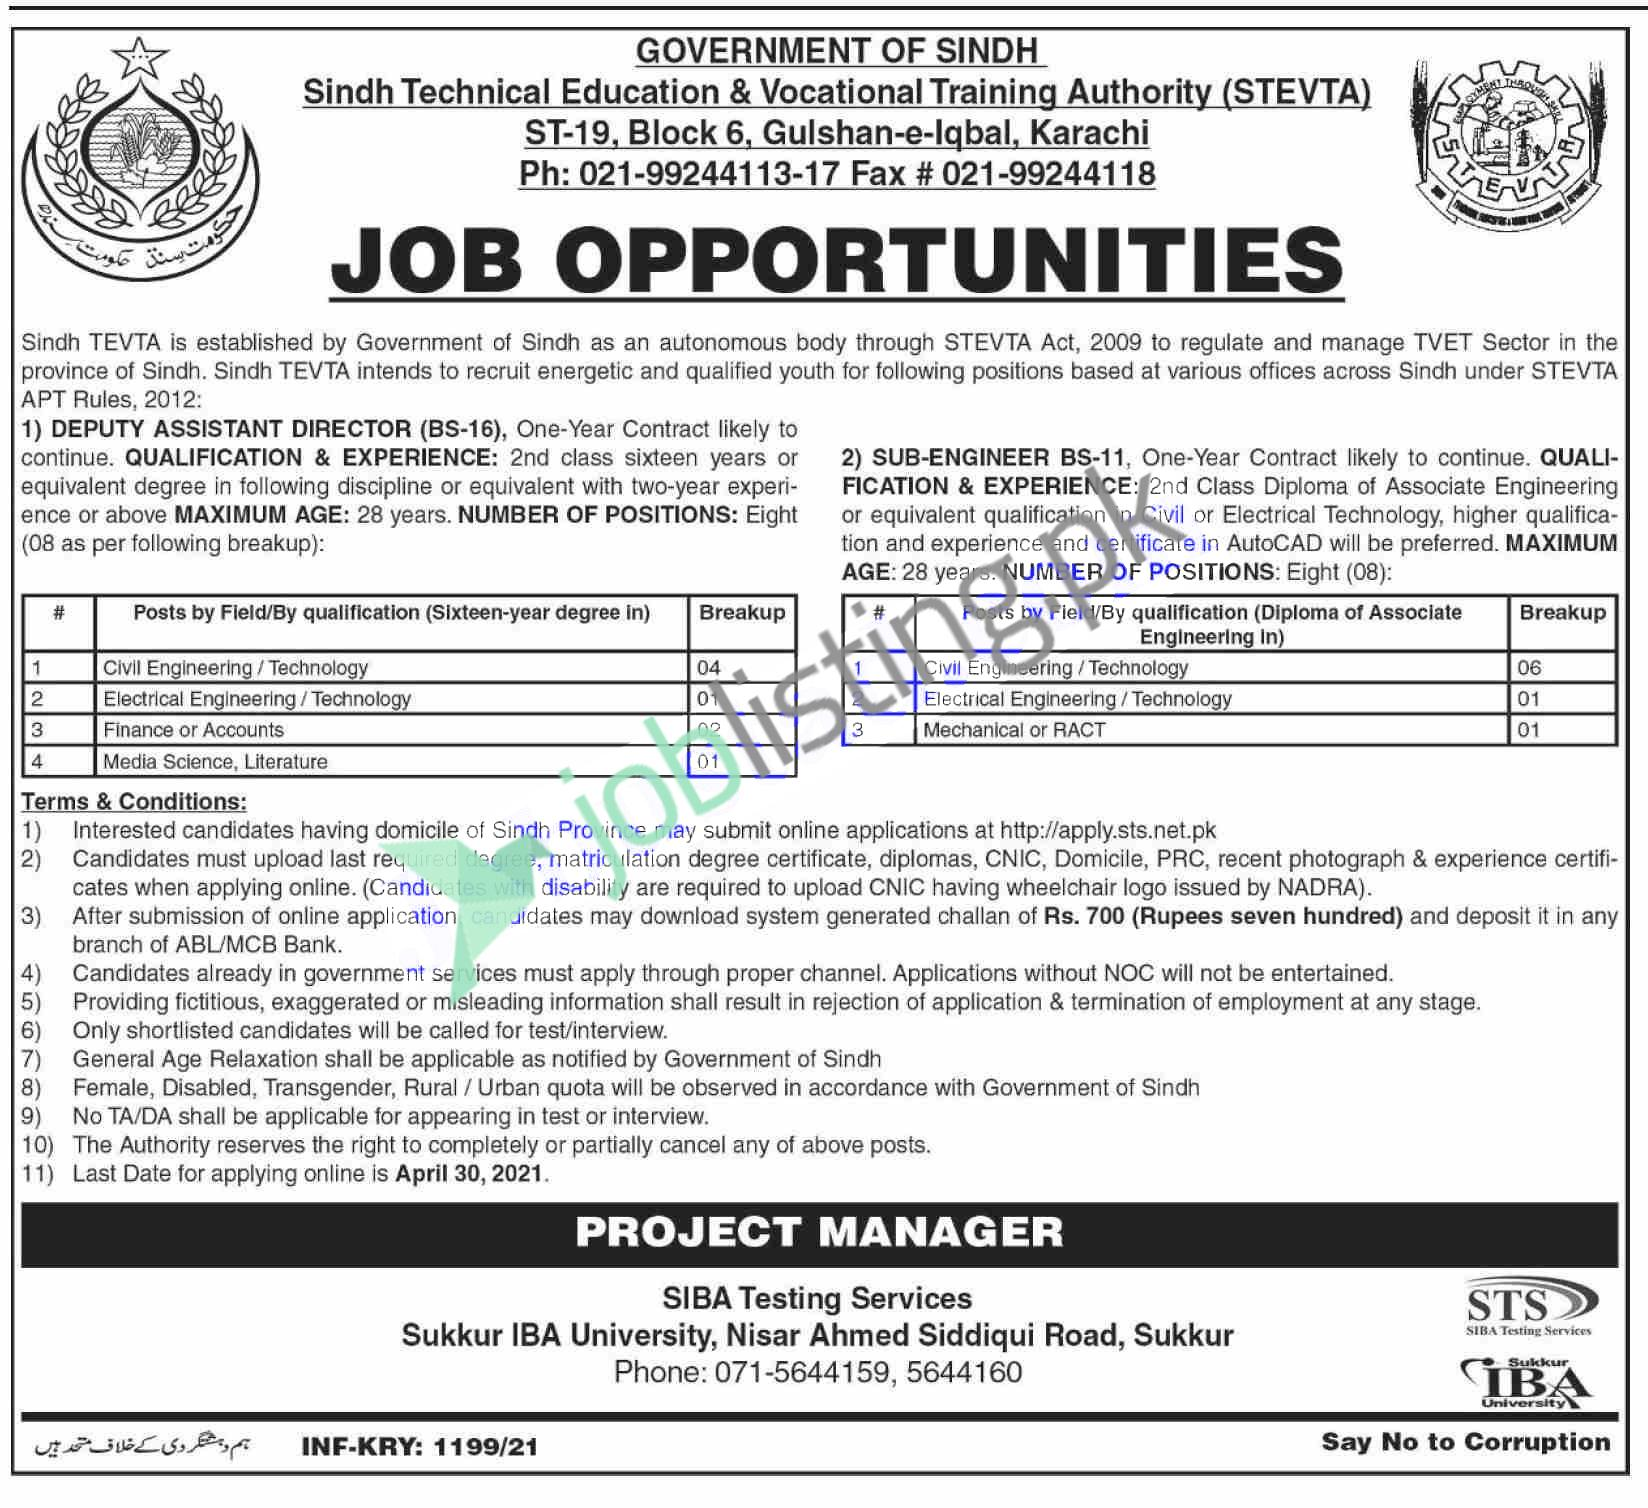 Deputy Assistant Director Situation Vacant in STEVTA Sindh Technical Education & Vocational Training Authority